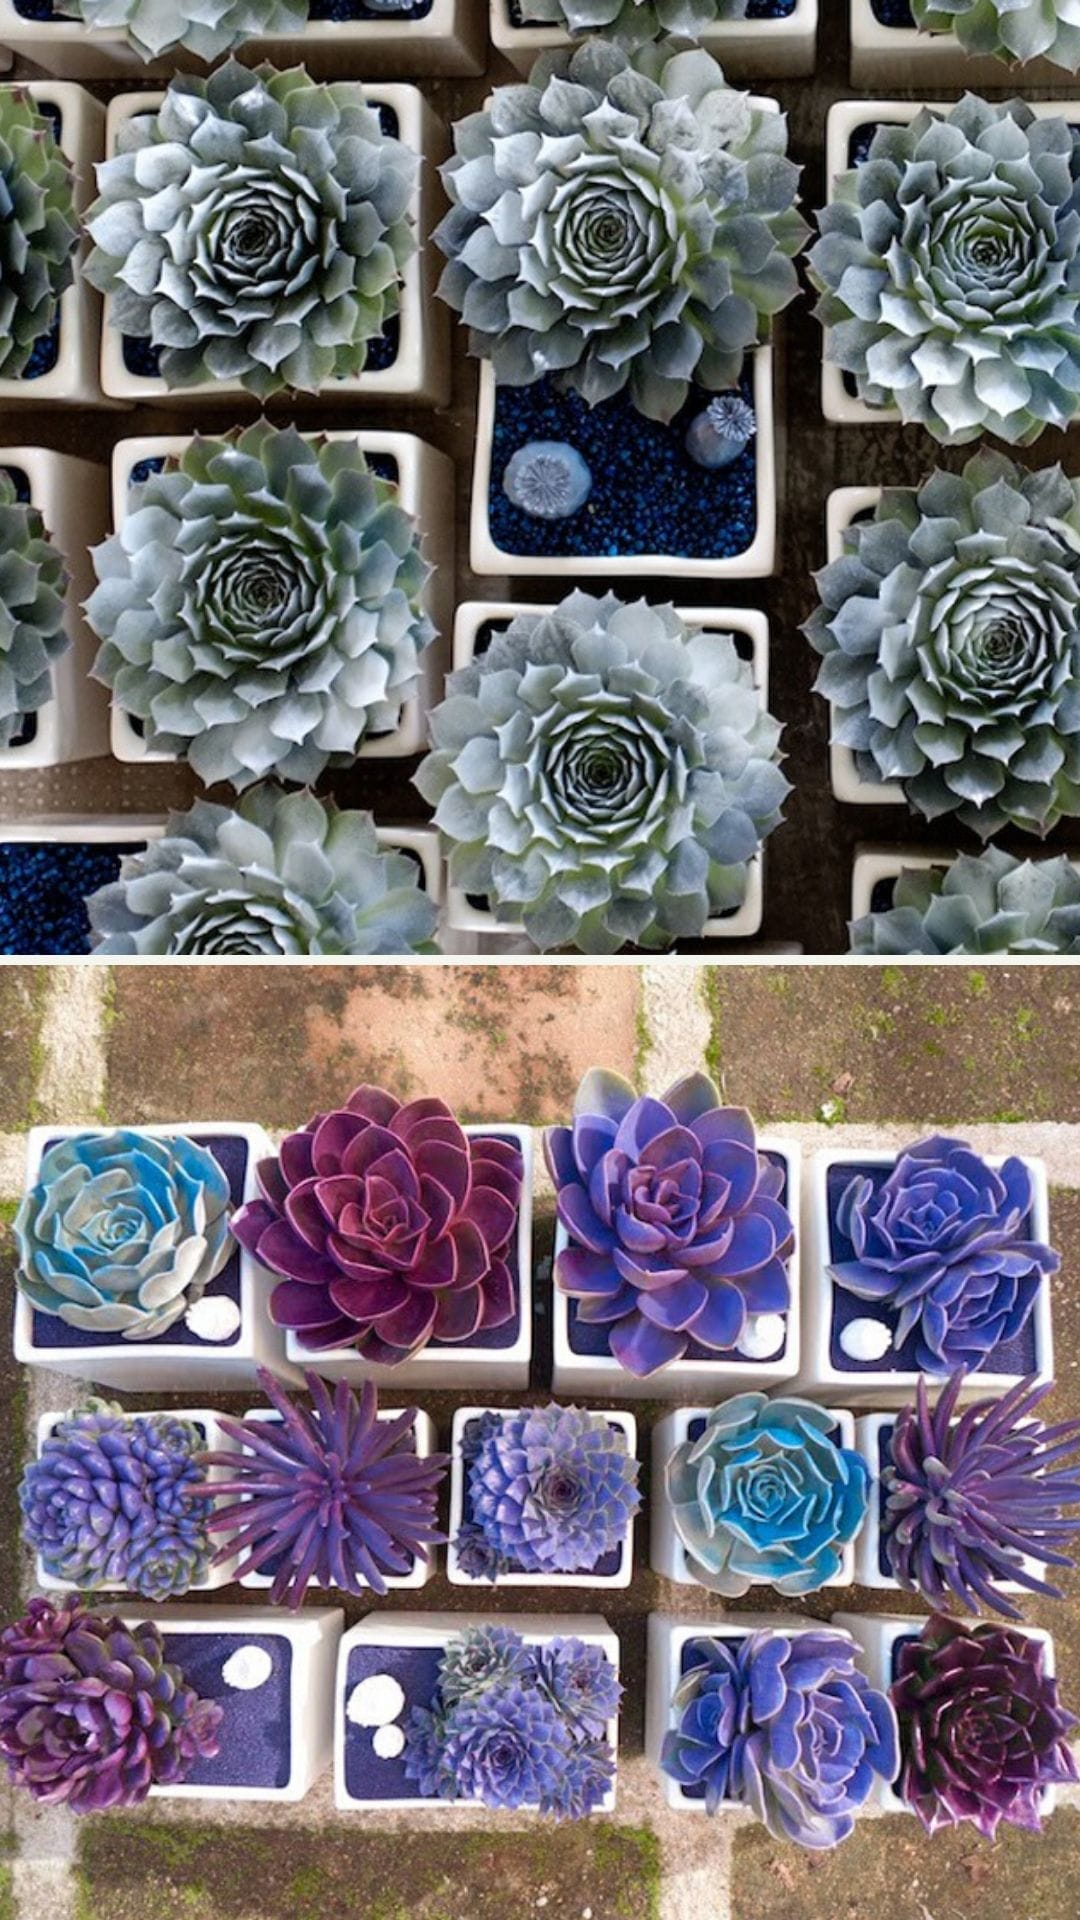 Best Succulent Garden Ideas #23